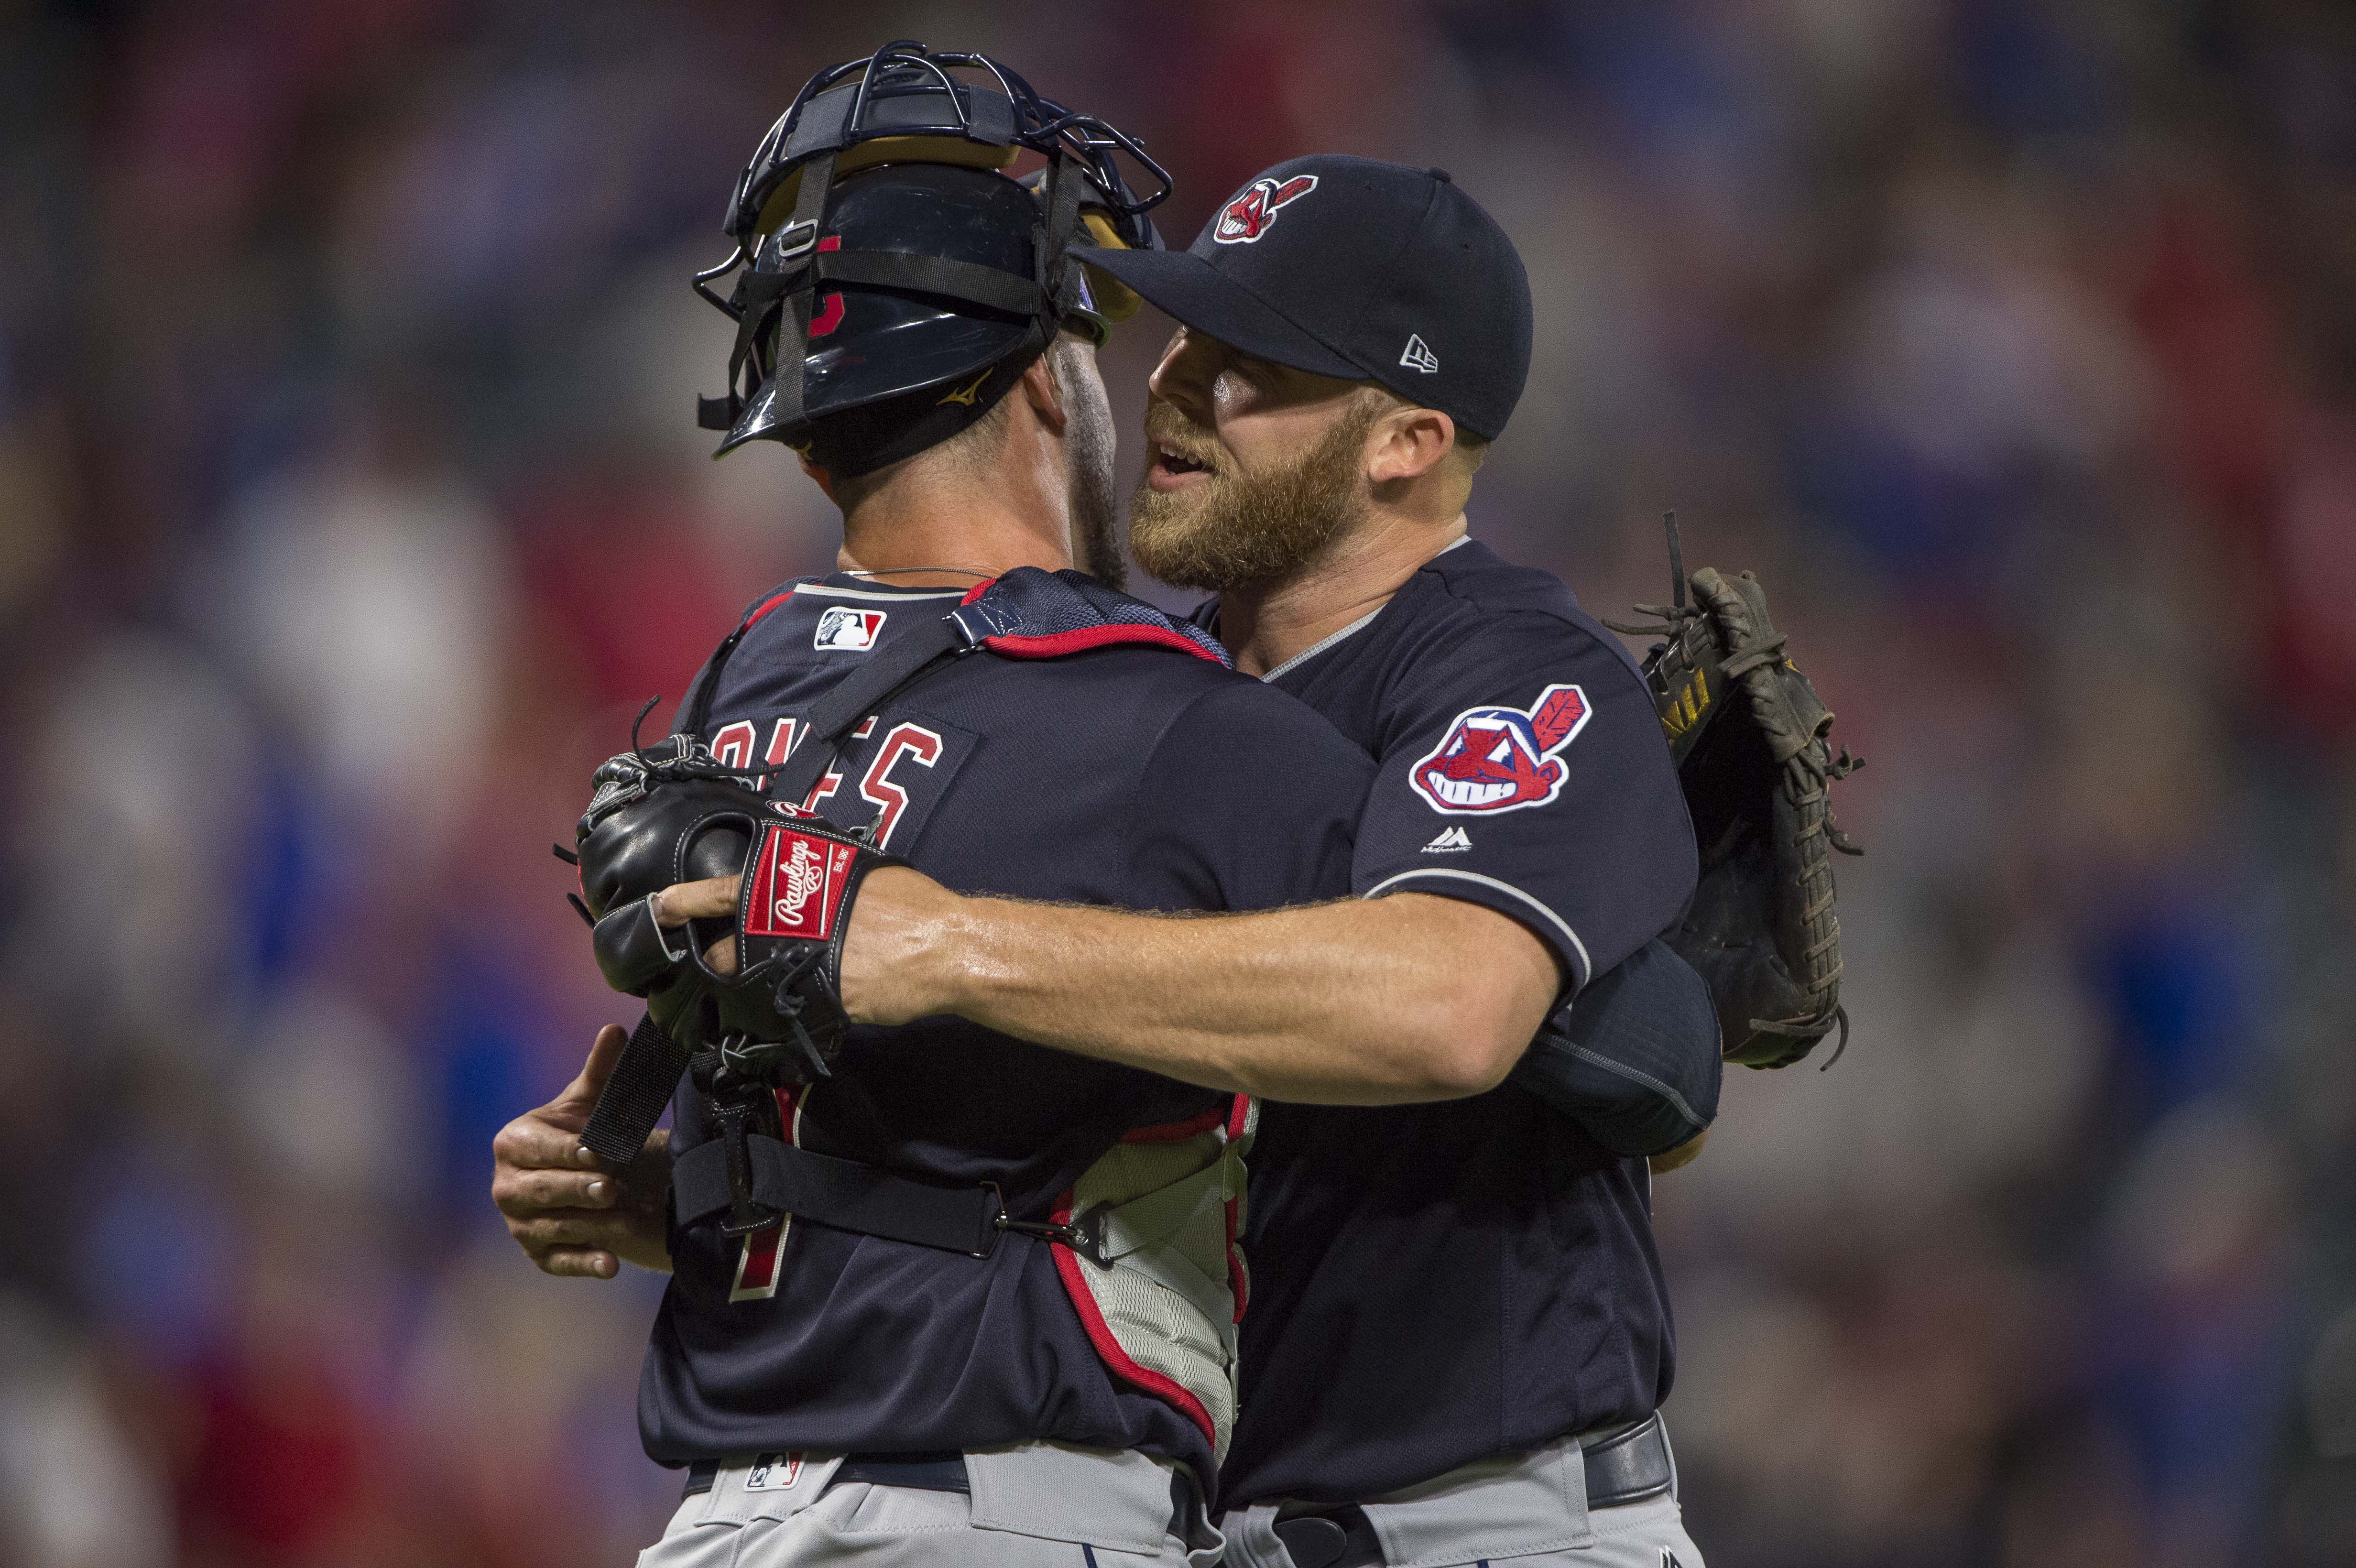 9991910-mlb-cleveland-indians-at-texas-rangers